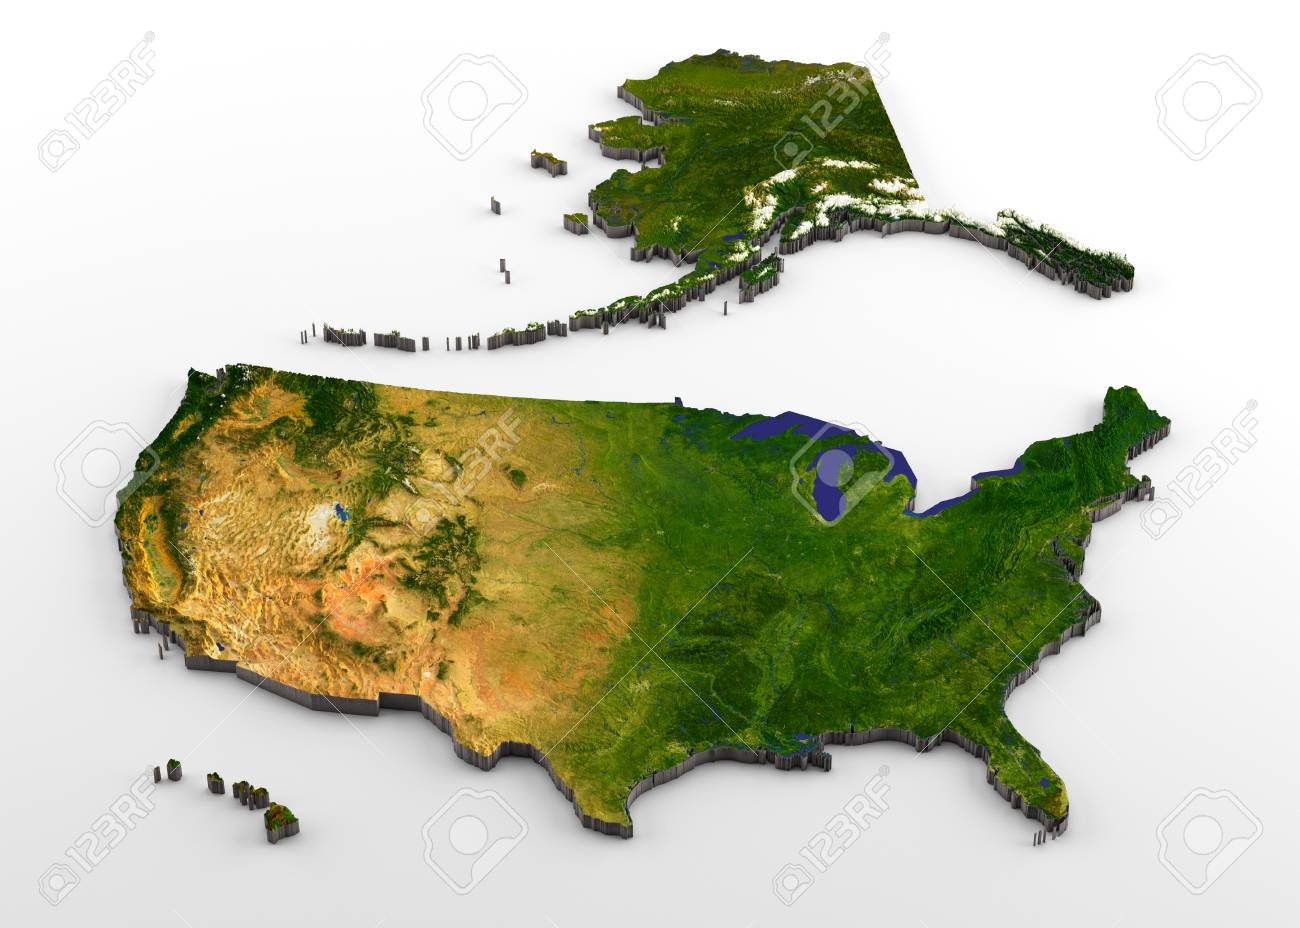 Images Physical Map Of Alaska on outline map of alaska, topographical map of alaska, rivers of alaska, us map alaska, climate map of alaska, map of southern alaska, the map of alaska, road map of alaska, atlas map of alaska, political map of alaska, denali alaska, large map alaska, satellite map of alaska, map of nome alaska, full map of alaska, detailed map alaska, printable maps alaska, physical maps of vietnam, world map of alaska, elevation map of alaska,